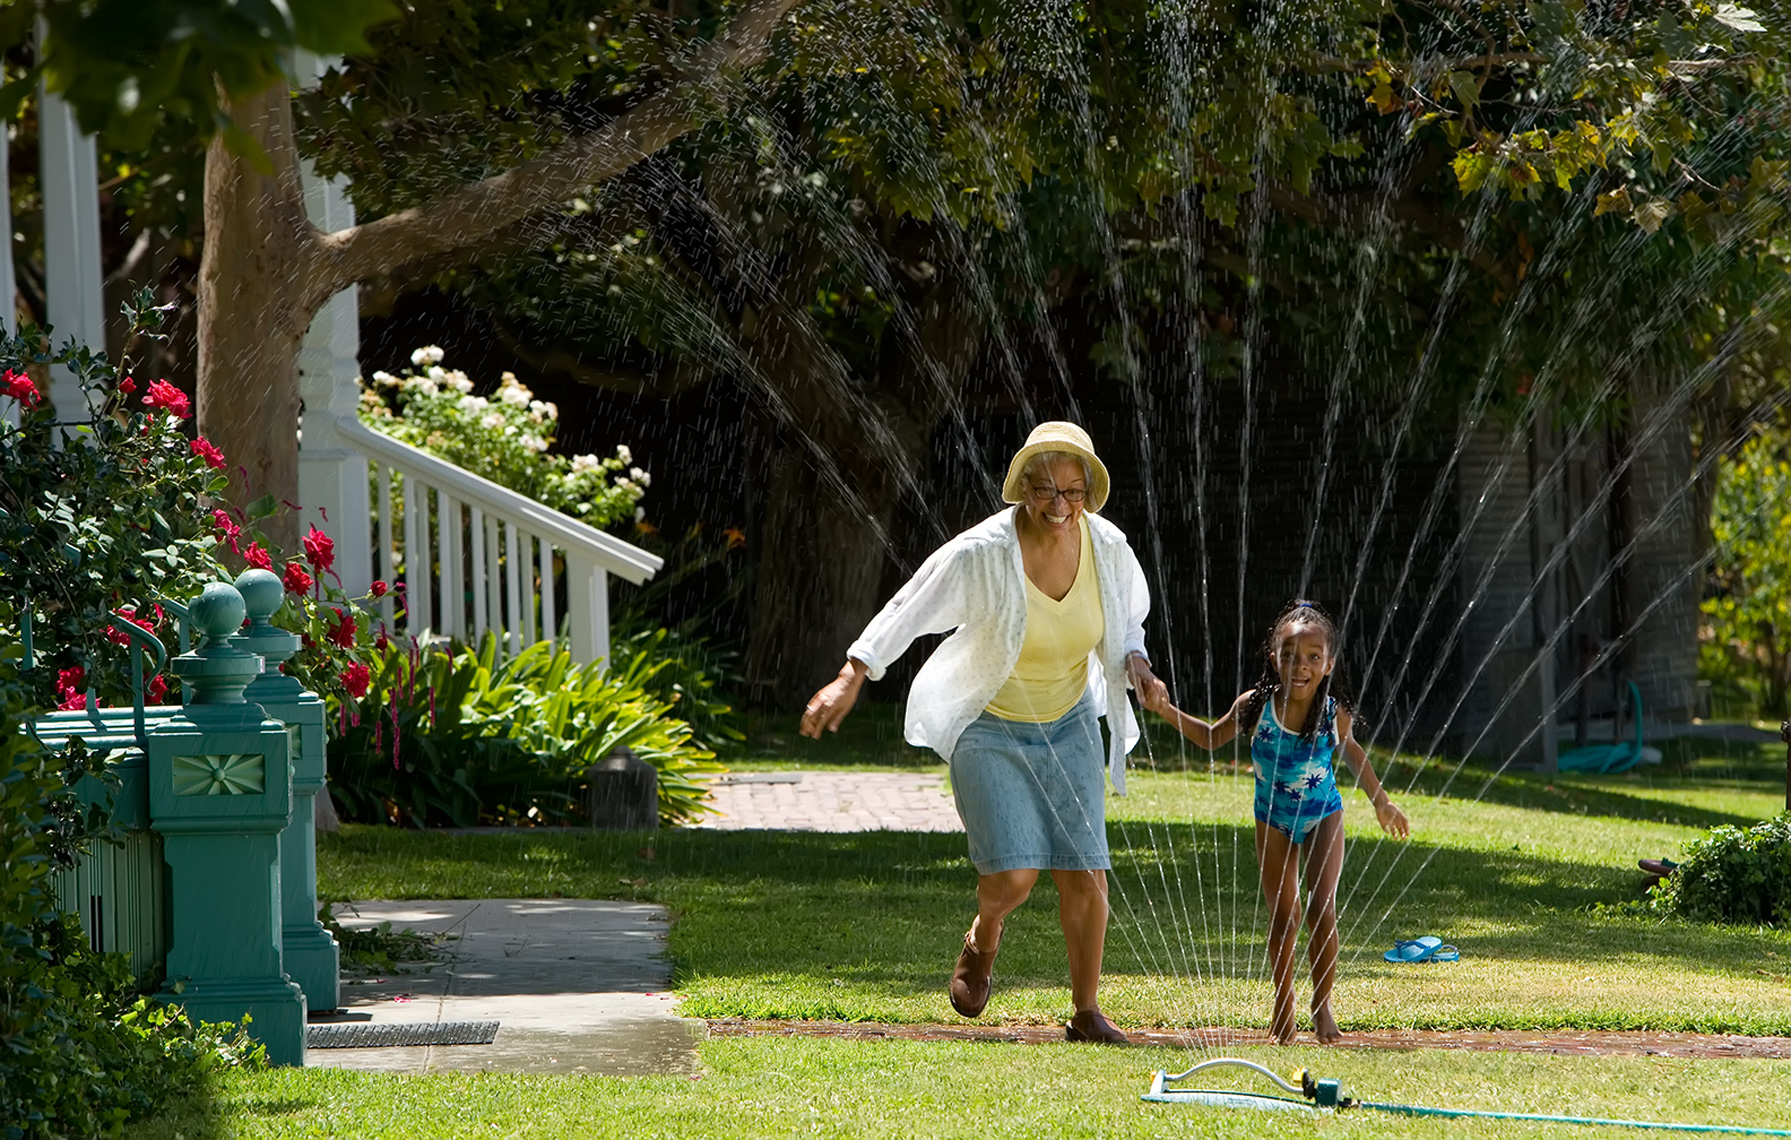 grandmother jumping through sprinkler